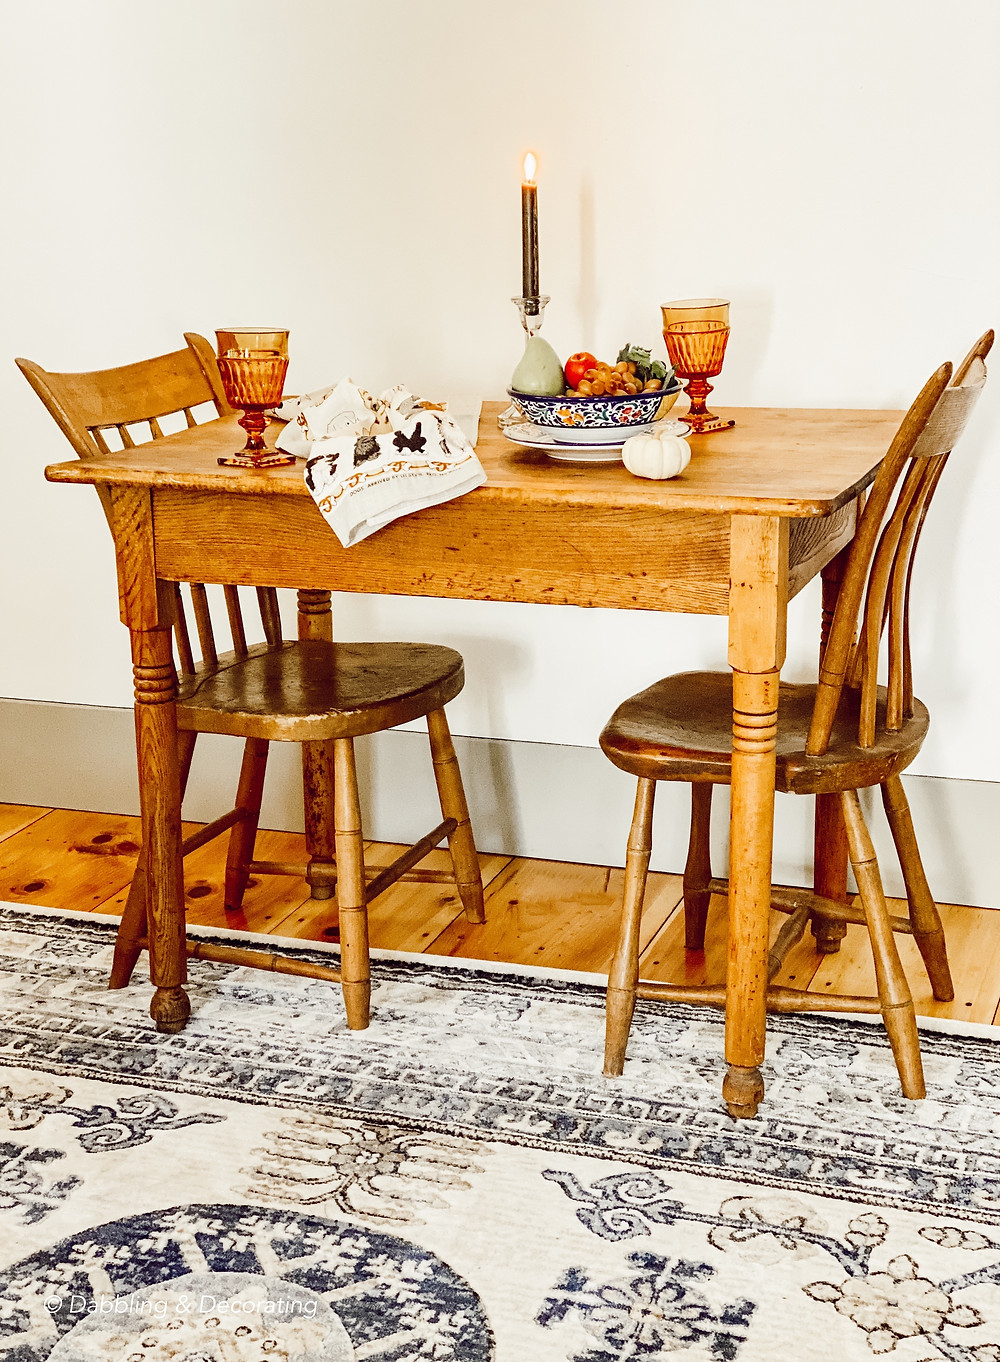 A Charming Antique Table and Chairs for Two